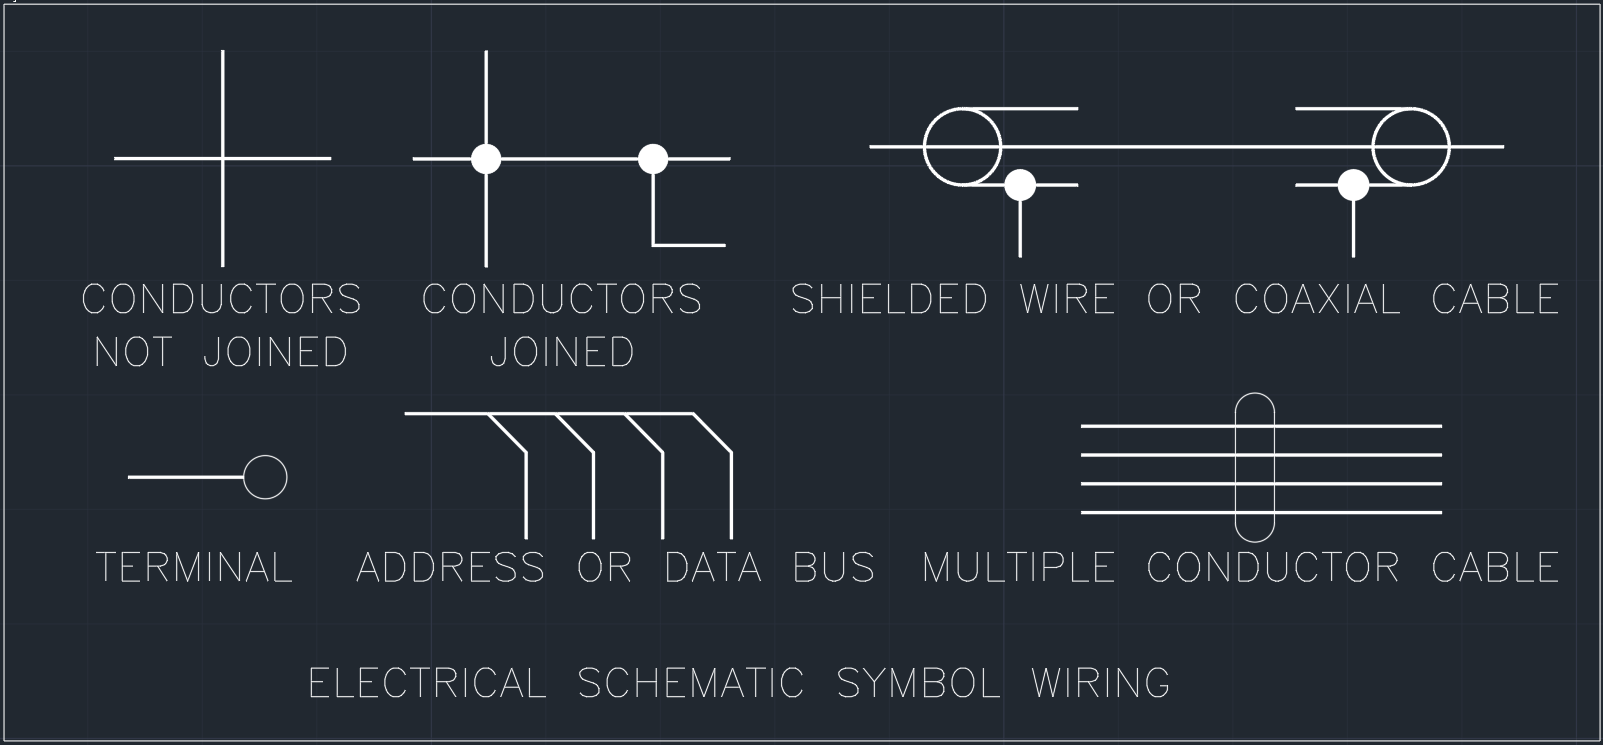 Electrical Schematic Symbol Wiring electrical schematic symbol wiring free cad block and autocad electrical wiring diagram symbols autocad at bakdesigns.co